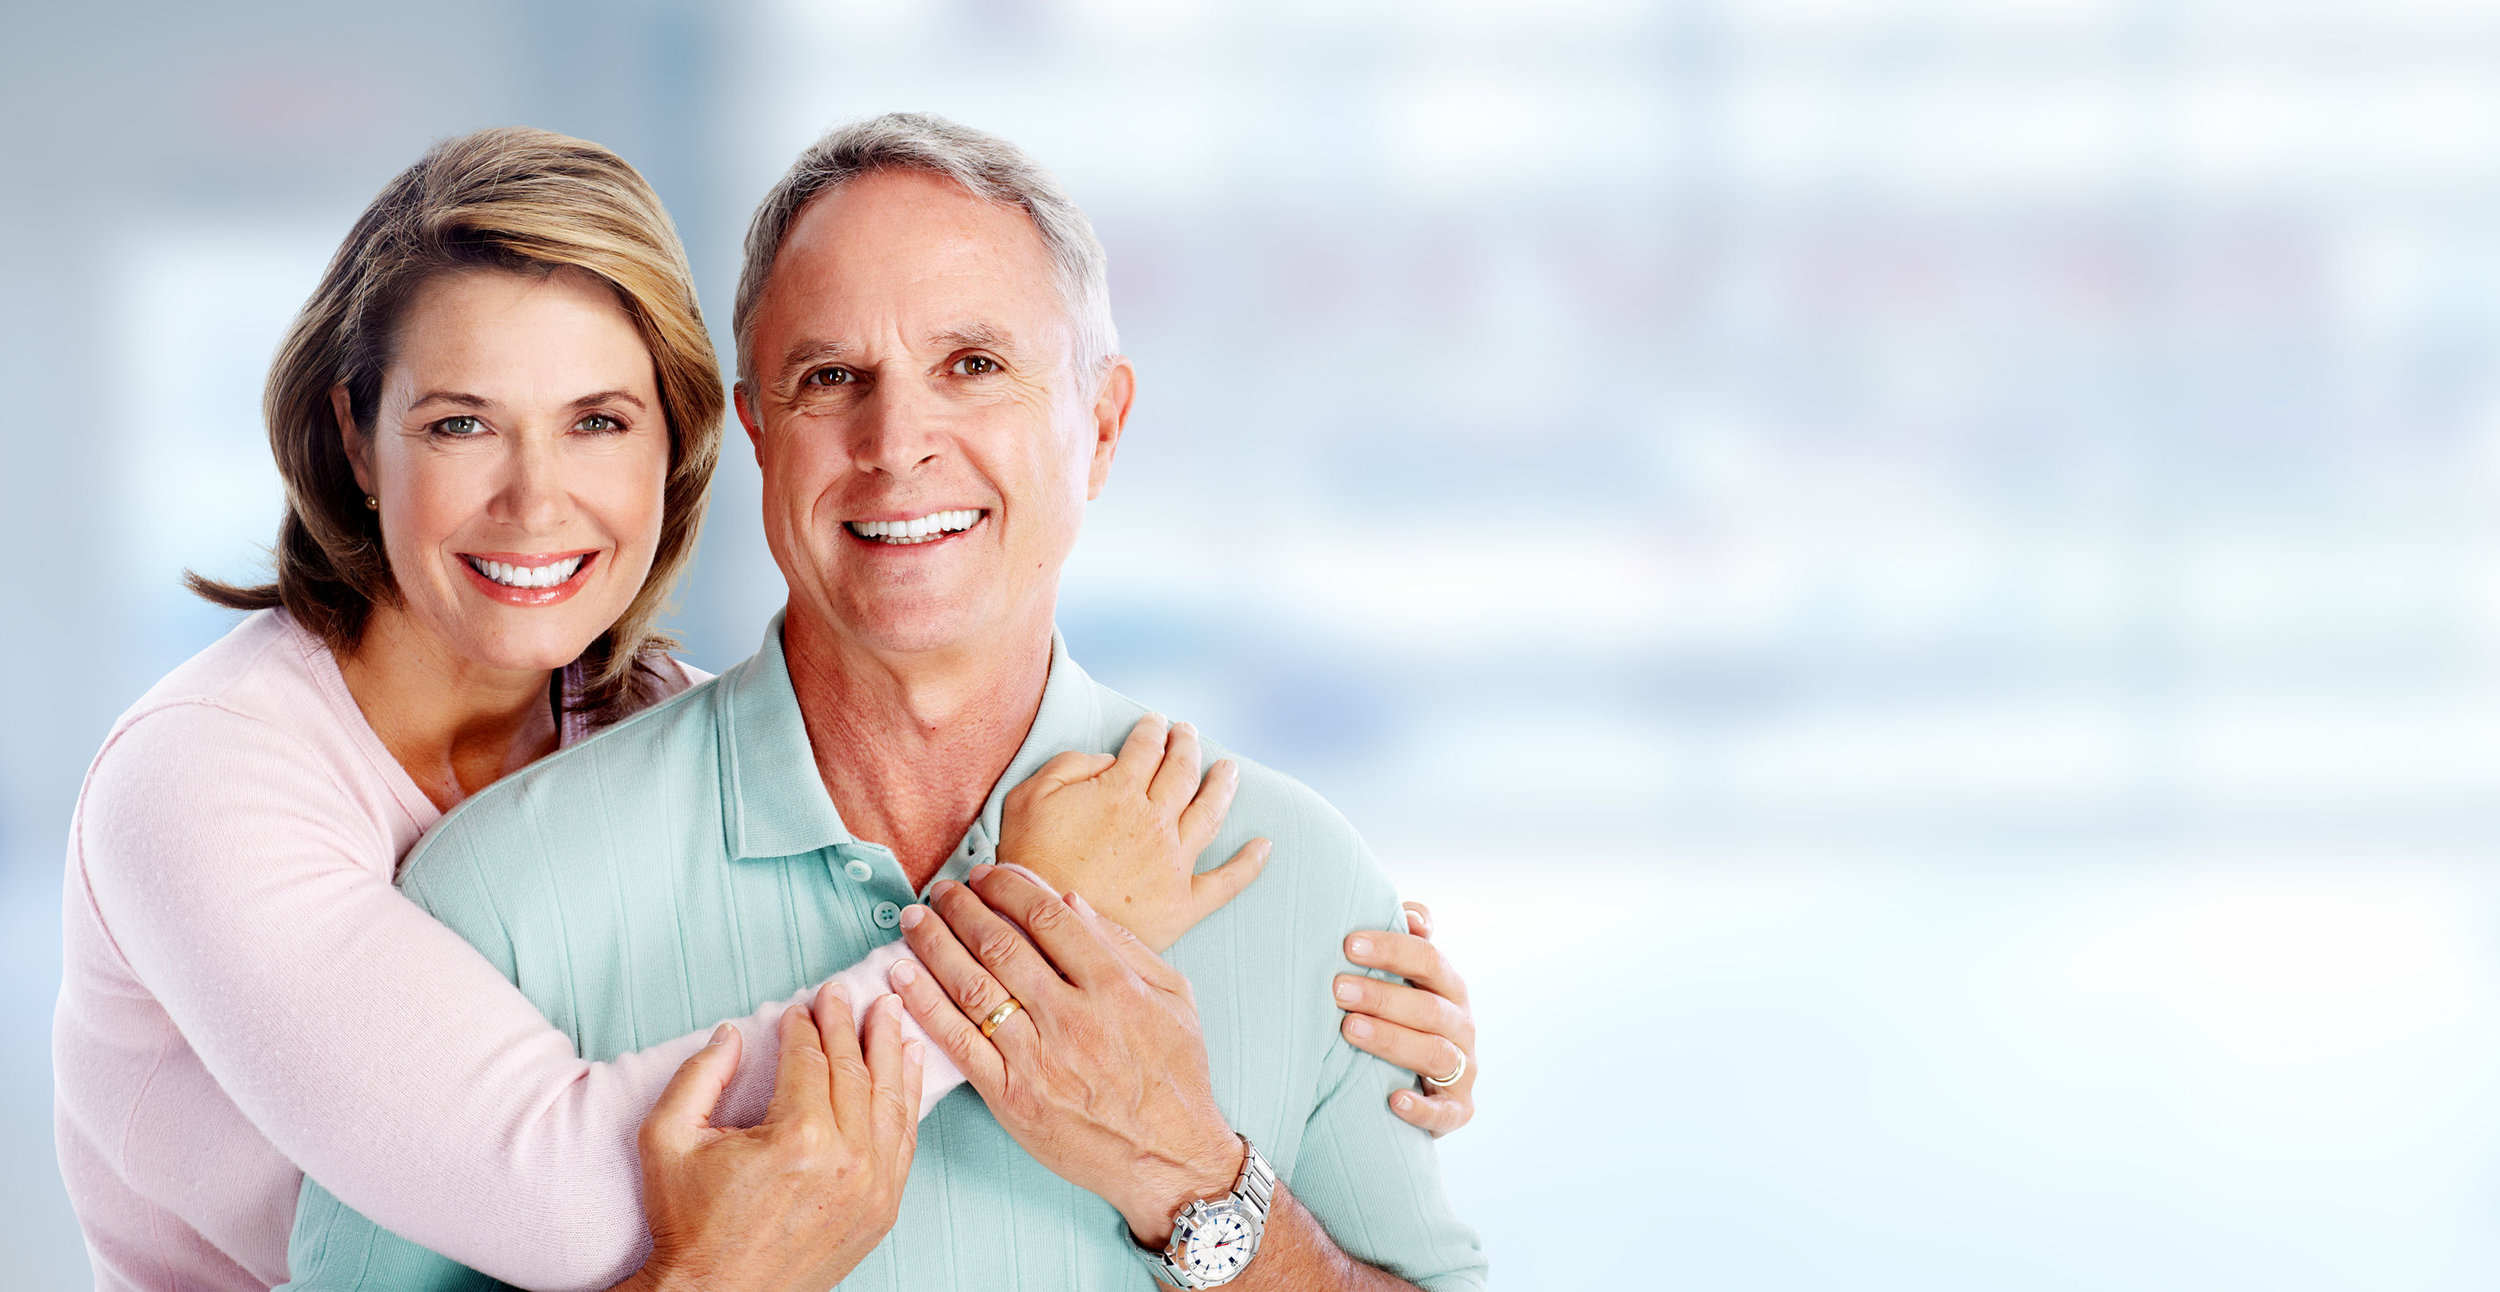 Extractions are sometimes necessary to provide optimal dental health.